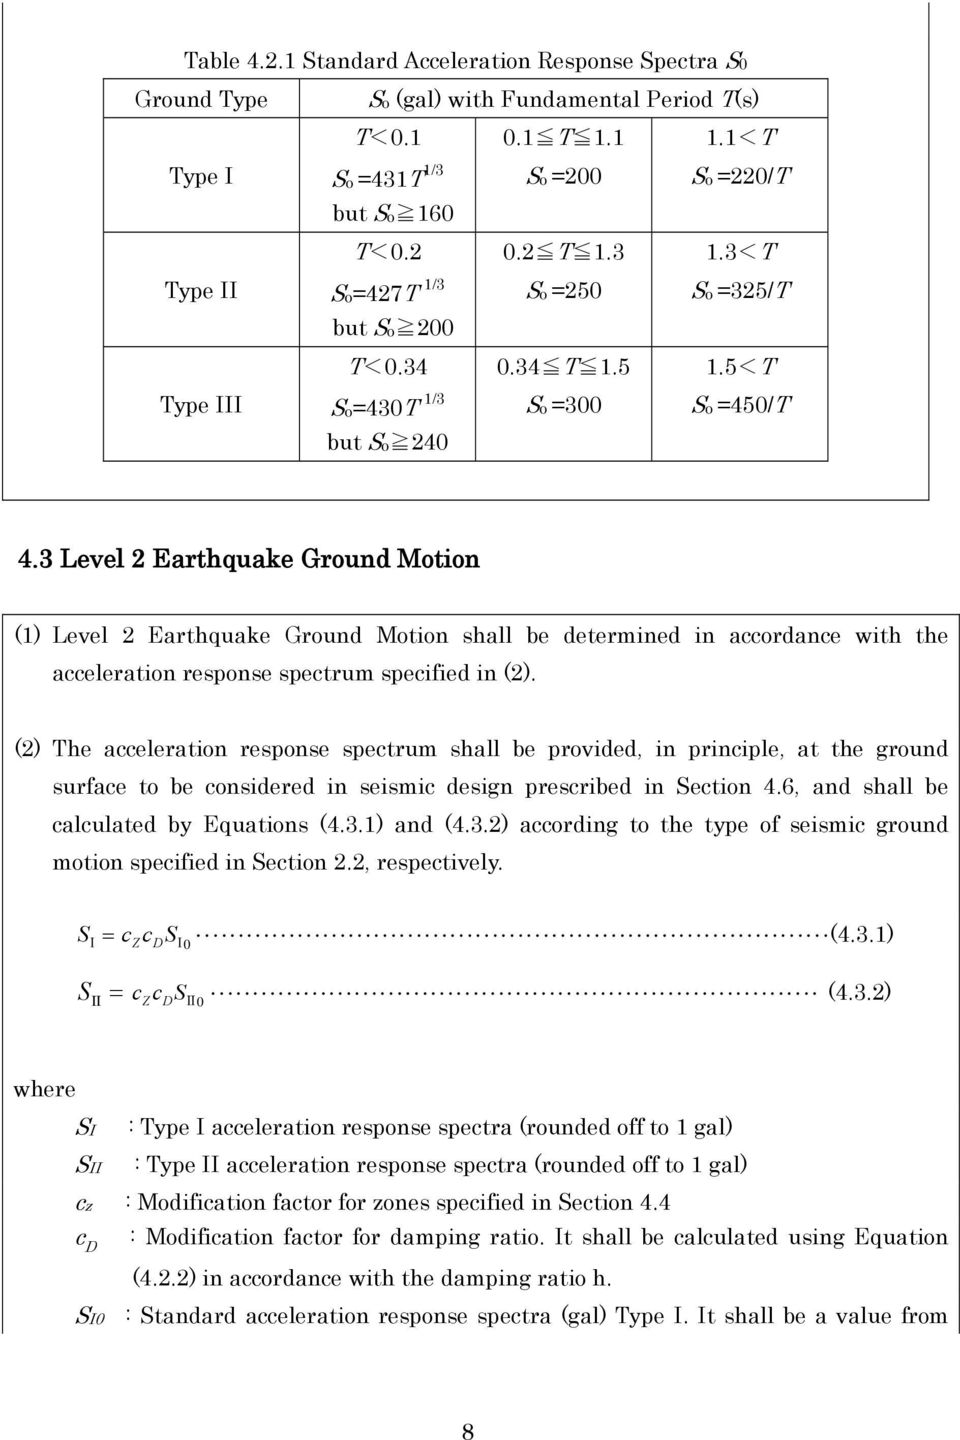 3 Level 2 Earthquake Ground Motion (1) Level 2 Earthquake Ground Motion shall be determined in accordance with the acceleration response spectrum specified in (2).